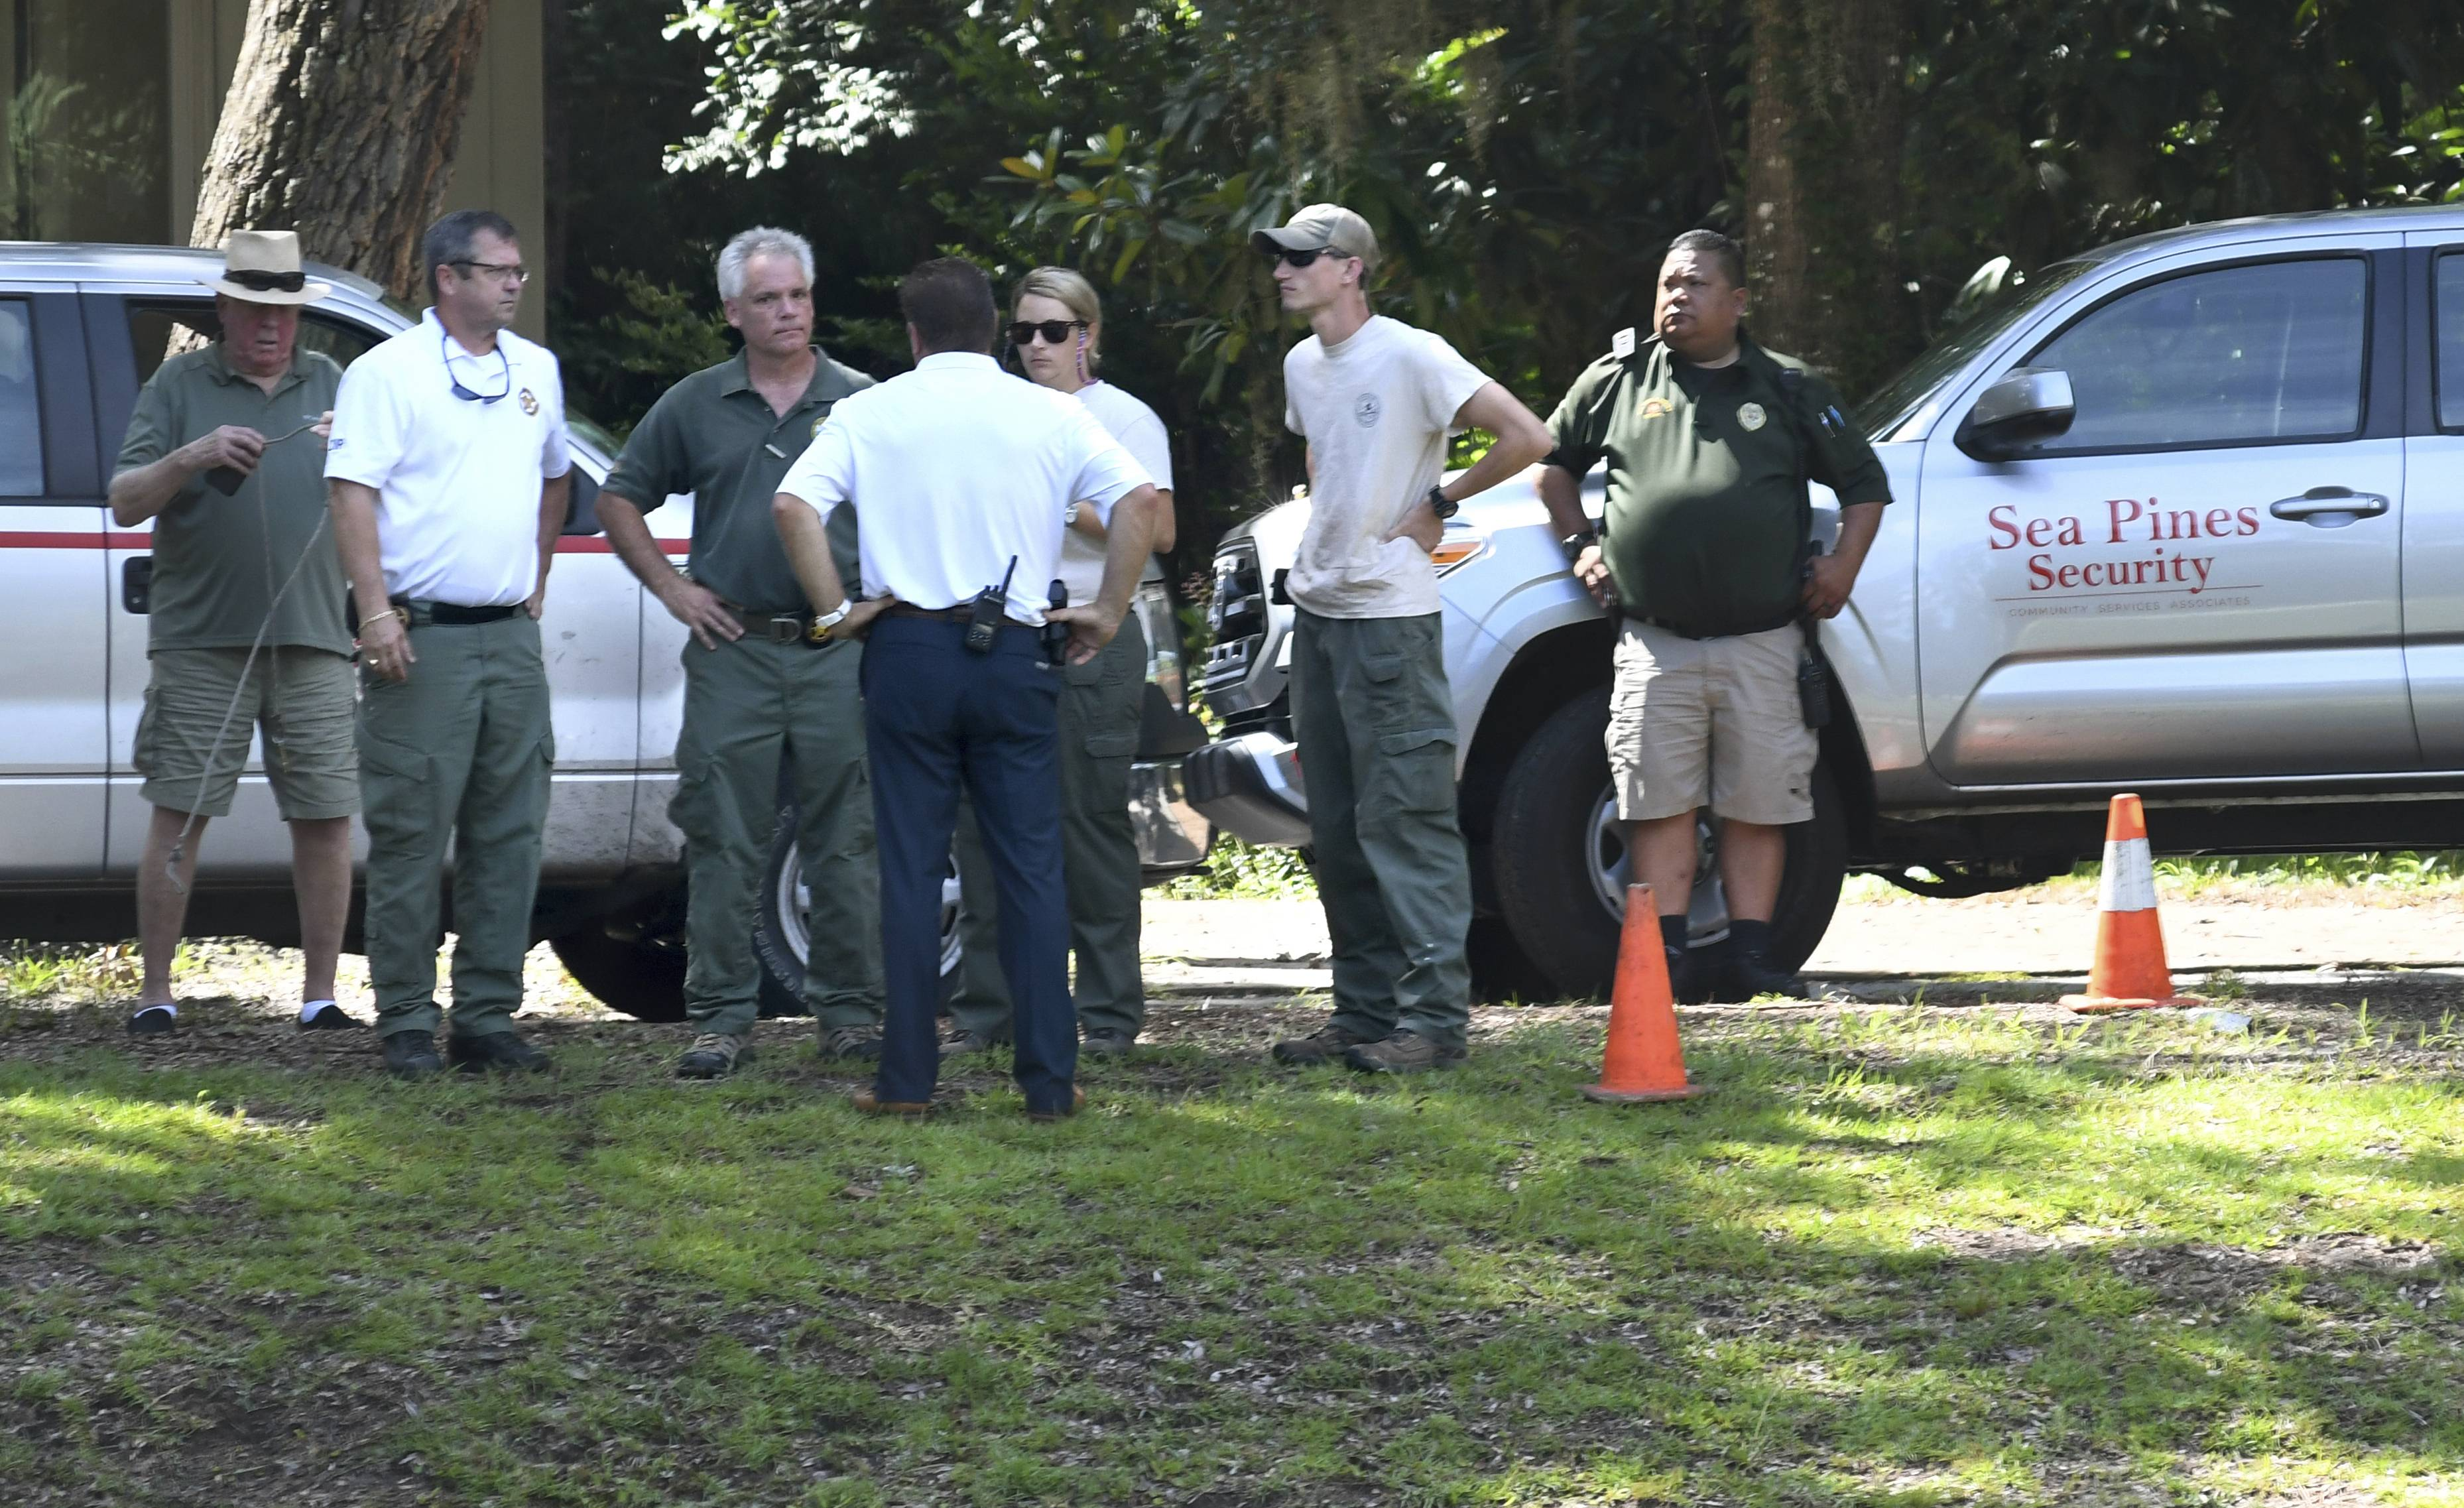 Law enforcement with Sea Pines Security, S.C. Department of Natural Resources and the Beaufort County Sheriff's Office stand near where authorities say Cassandra Cline was dragged into a lagoon by an alligator and killed while trying to save her dog on Monday, Aug. 20, 2018, on Hilton Head Island, S.C. Cline was walking the dog along a residential area of Sea Pines Resort when she was attacked, state and local officials said.